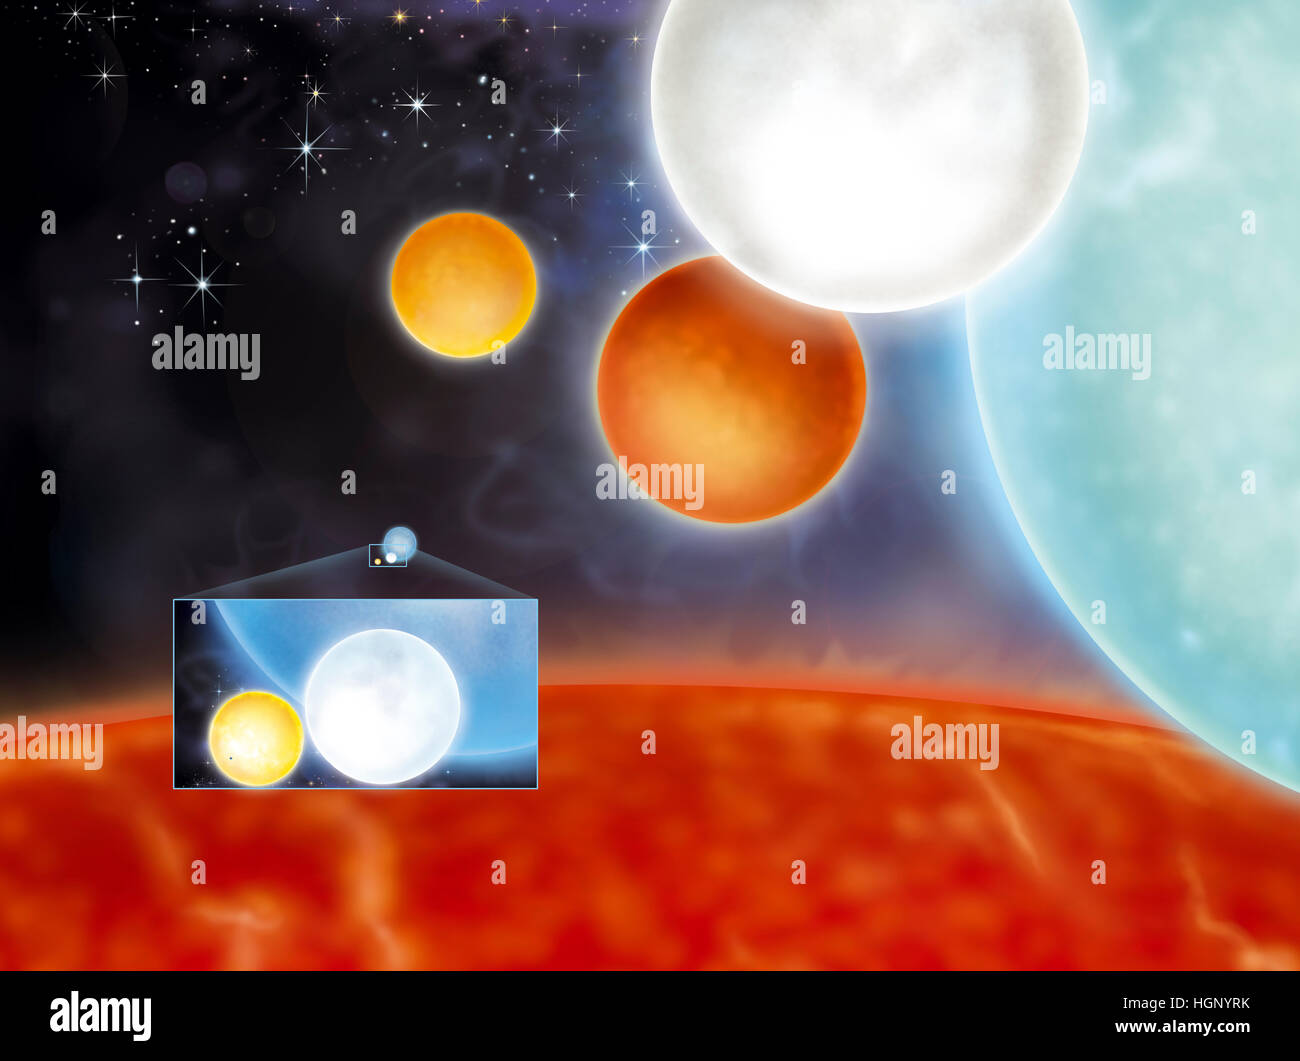 STAR, ILLUSTRATION - Stock Image